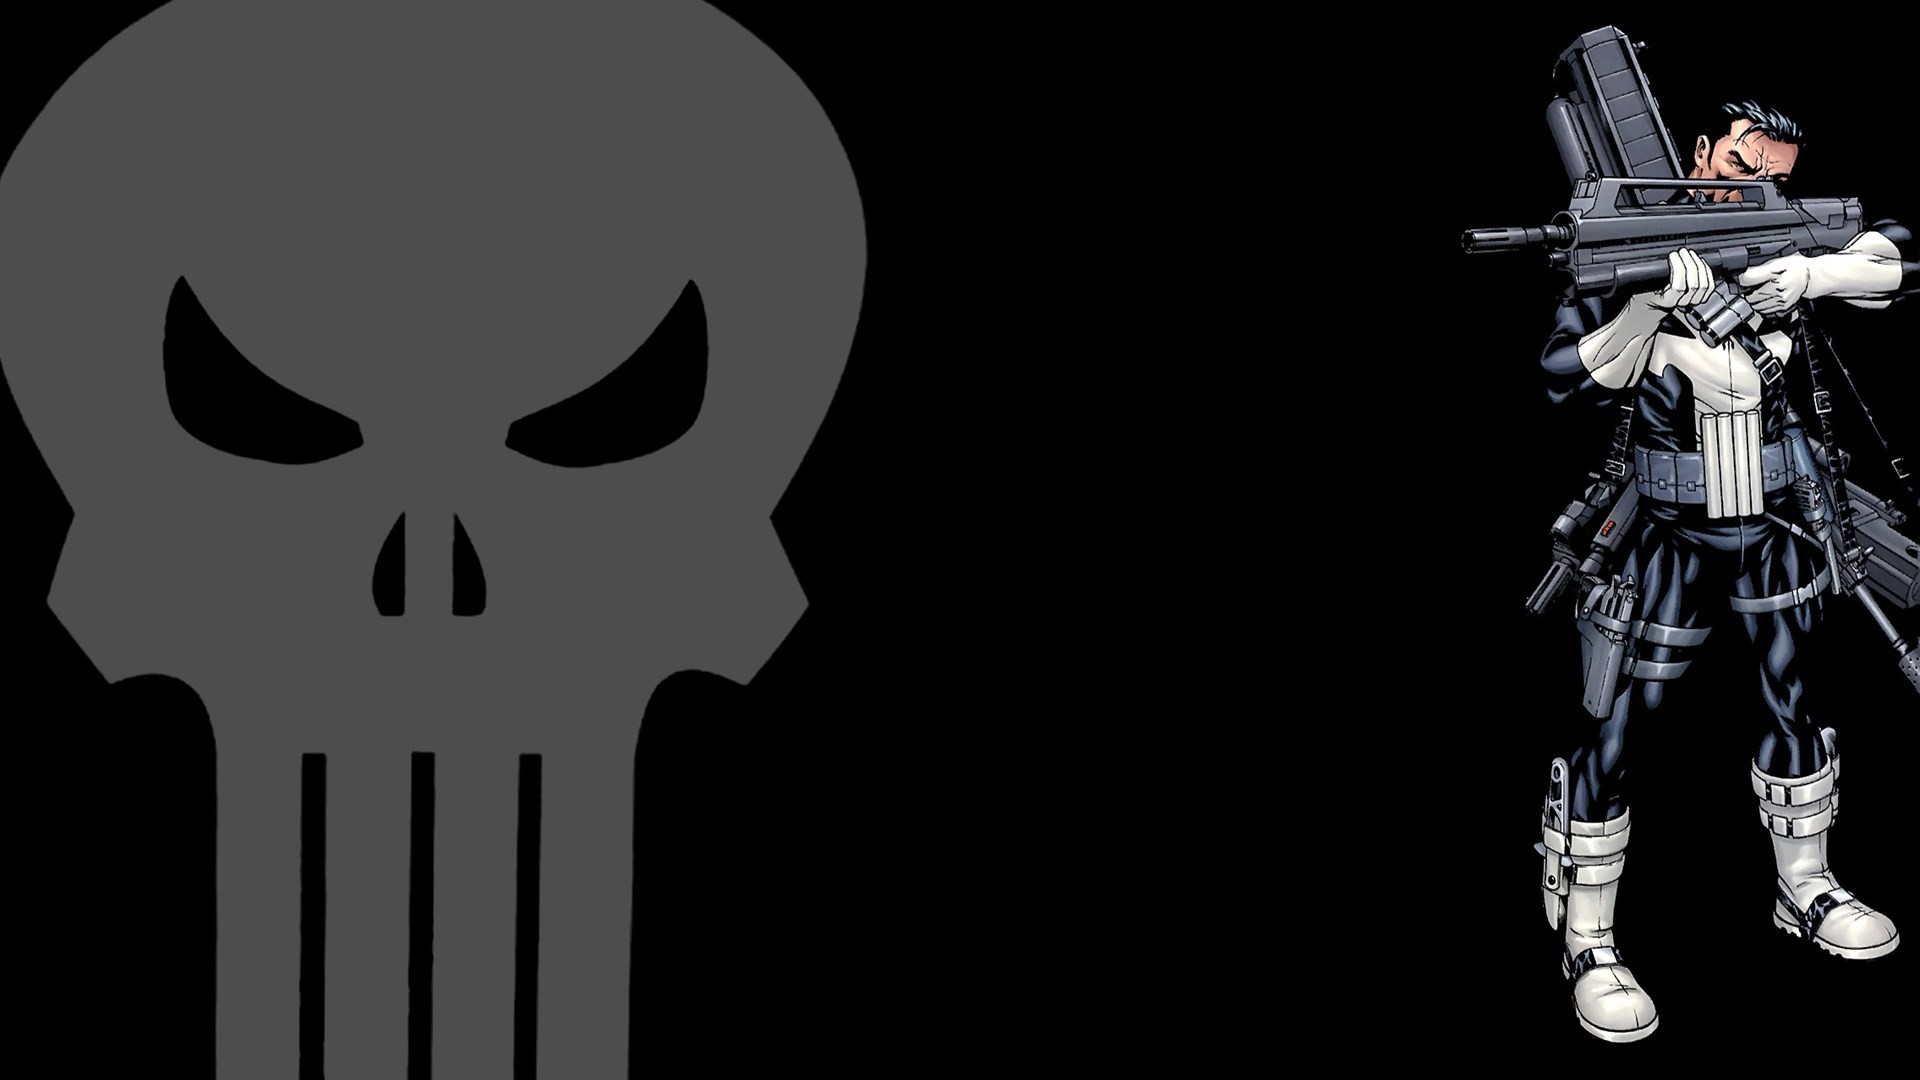 1920x1080 the punisher wallpaper - Full HD Backgrounds, Valiant Jacobson 2017-03-09